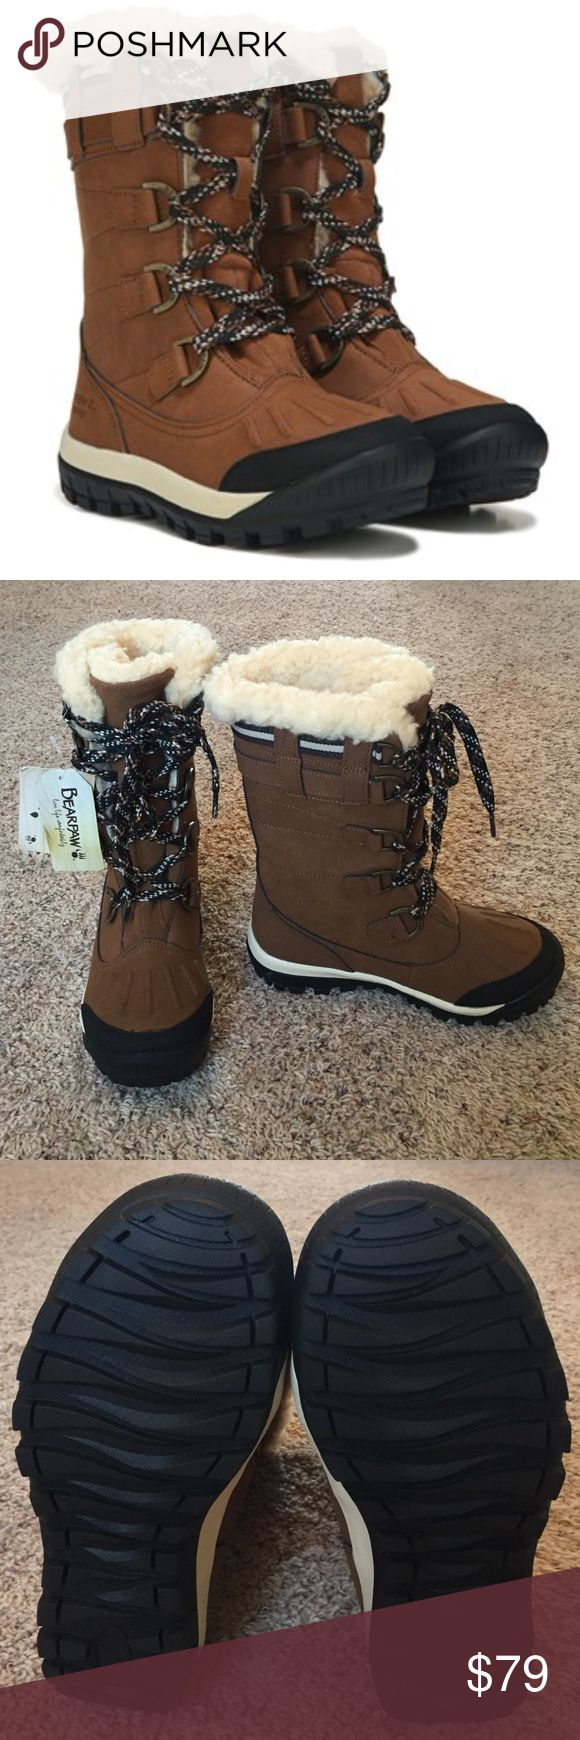 New BearPaw Boots Waterproof • True to size • Leather/synthetic upper • Wool blend lining • Sheepskin footbed • Very cozy  Thanks for looking  BearPaw Shoes Winter & Rain Boots